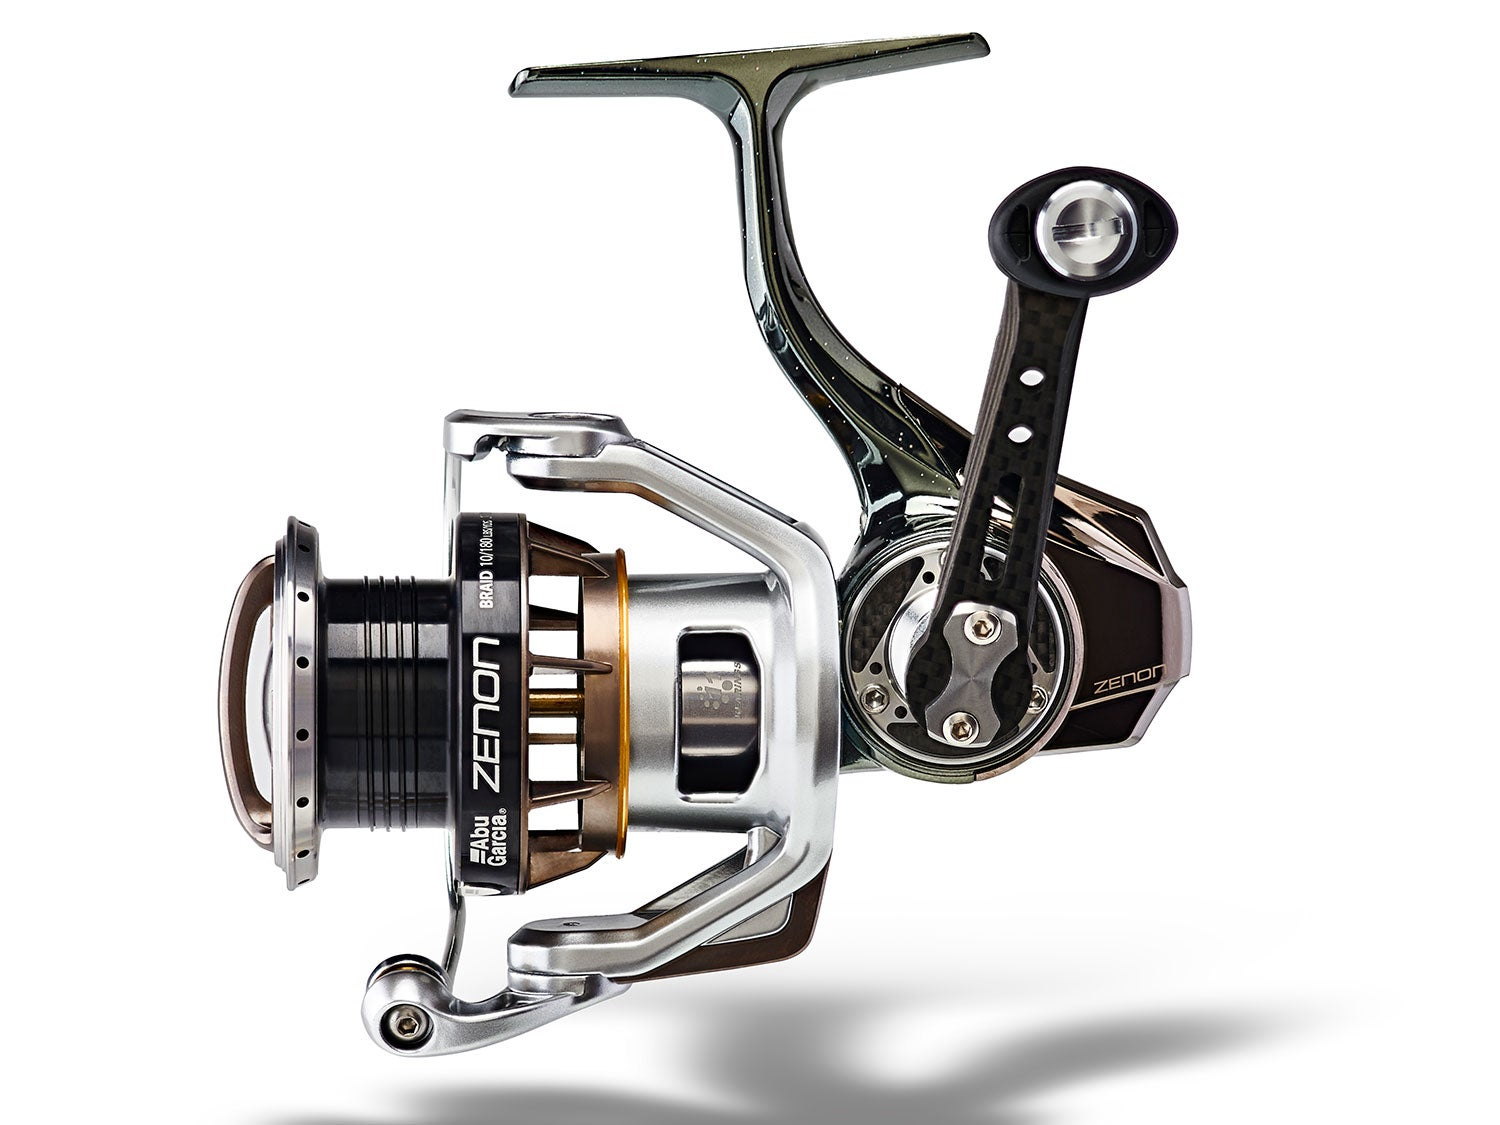 The Top 10 Fishing Rods and Reels of the Year